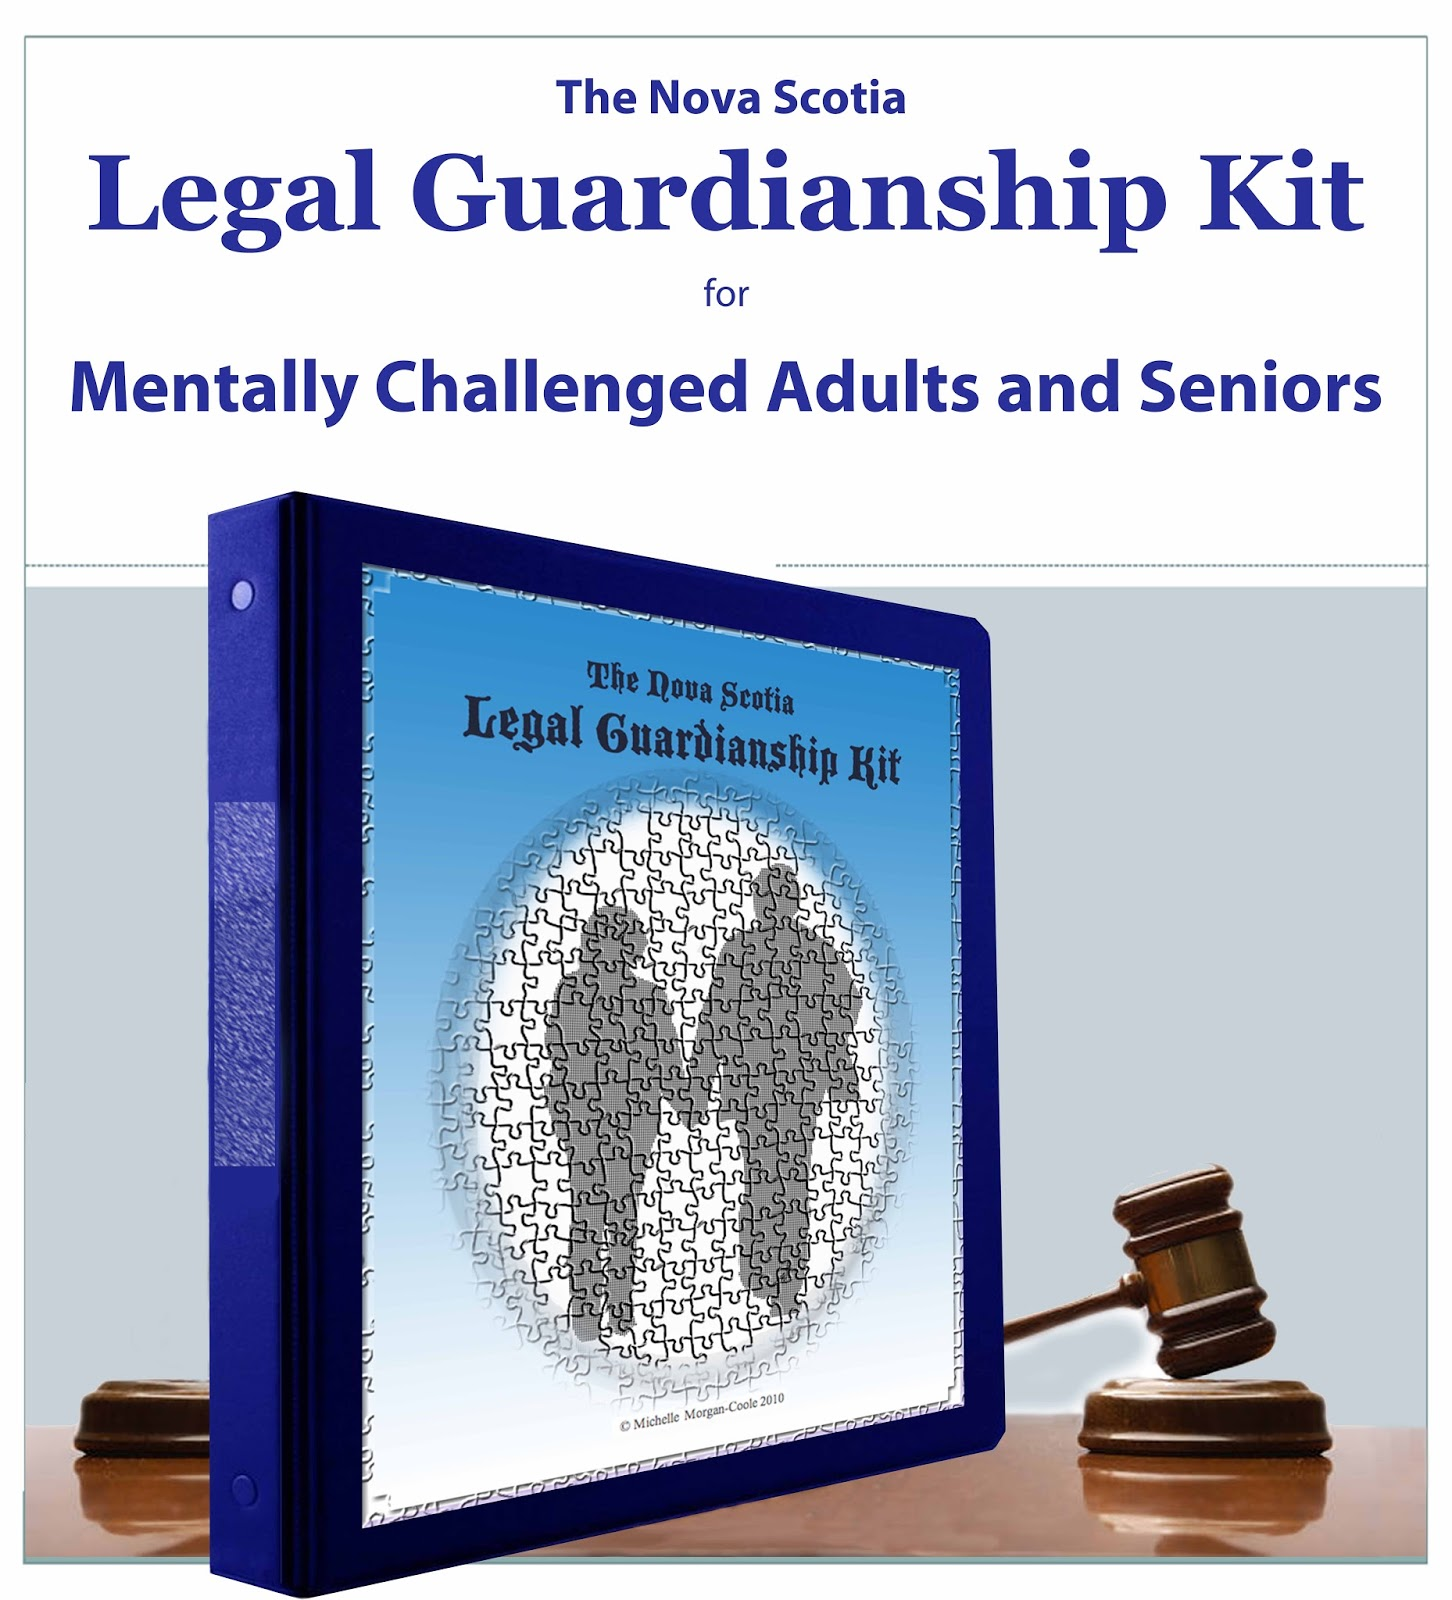 A primer on special needs and the law the ns legal guardianship kit hard copy version of the nova scotia legal guardianship kit available solutioingenieria Images